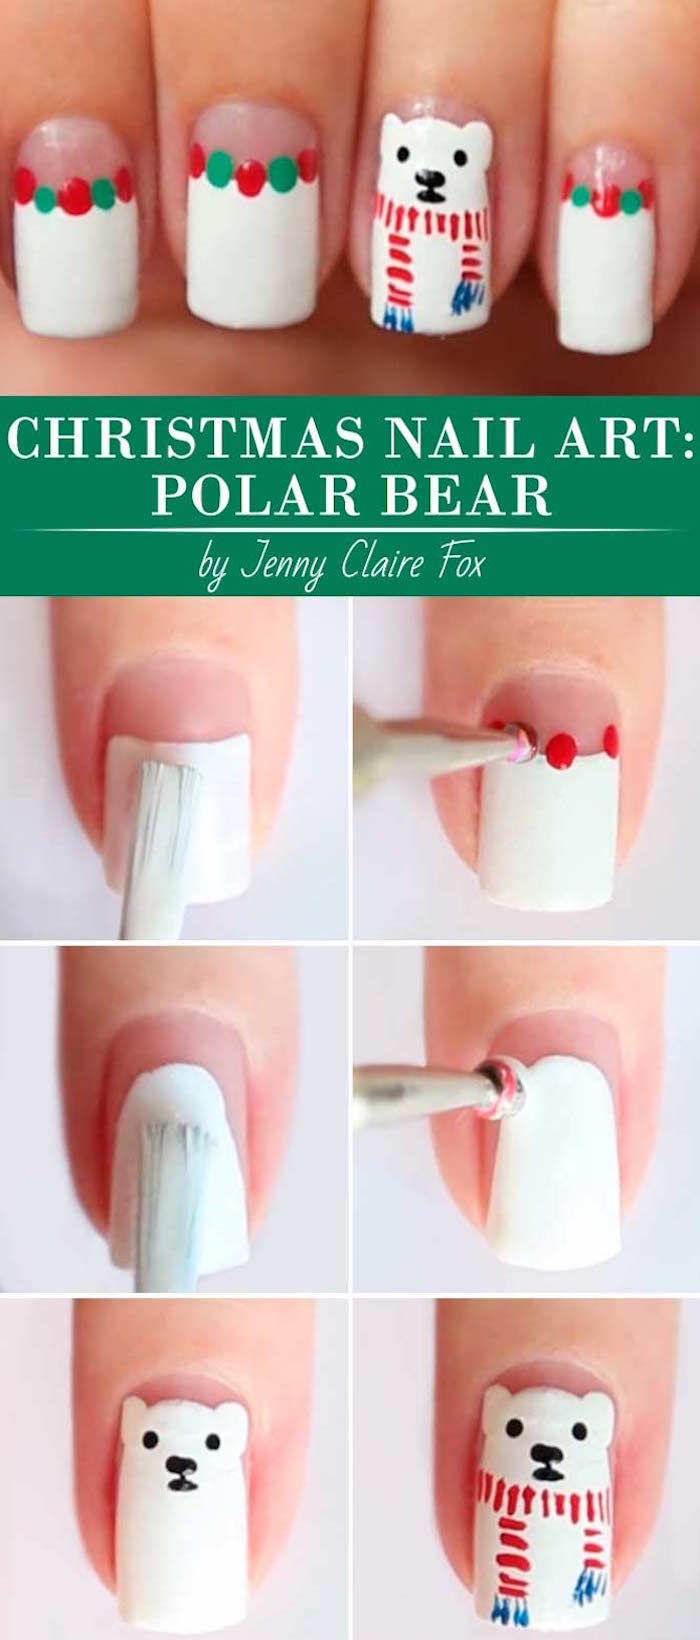 green and white dots on white nail polish simple christmas nails step by step diy tutorial for polar bear decoration